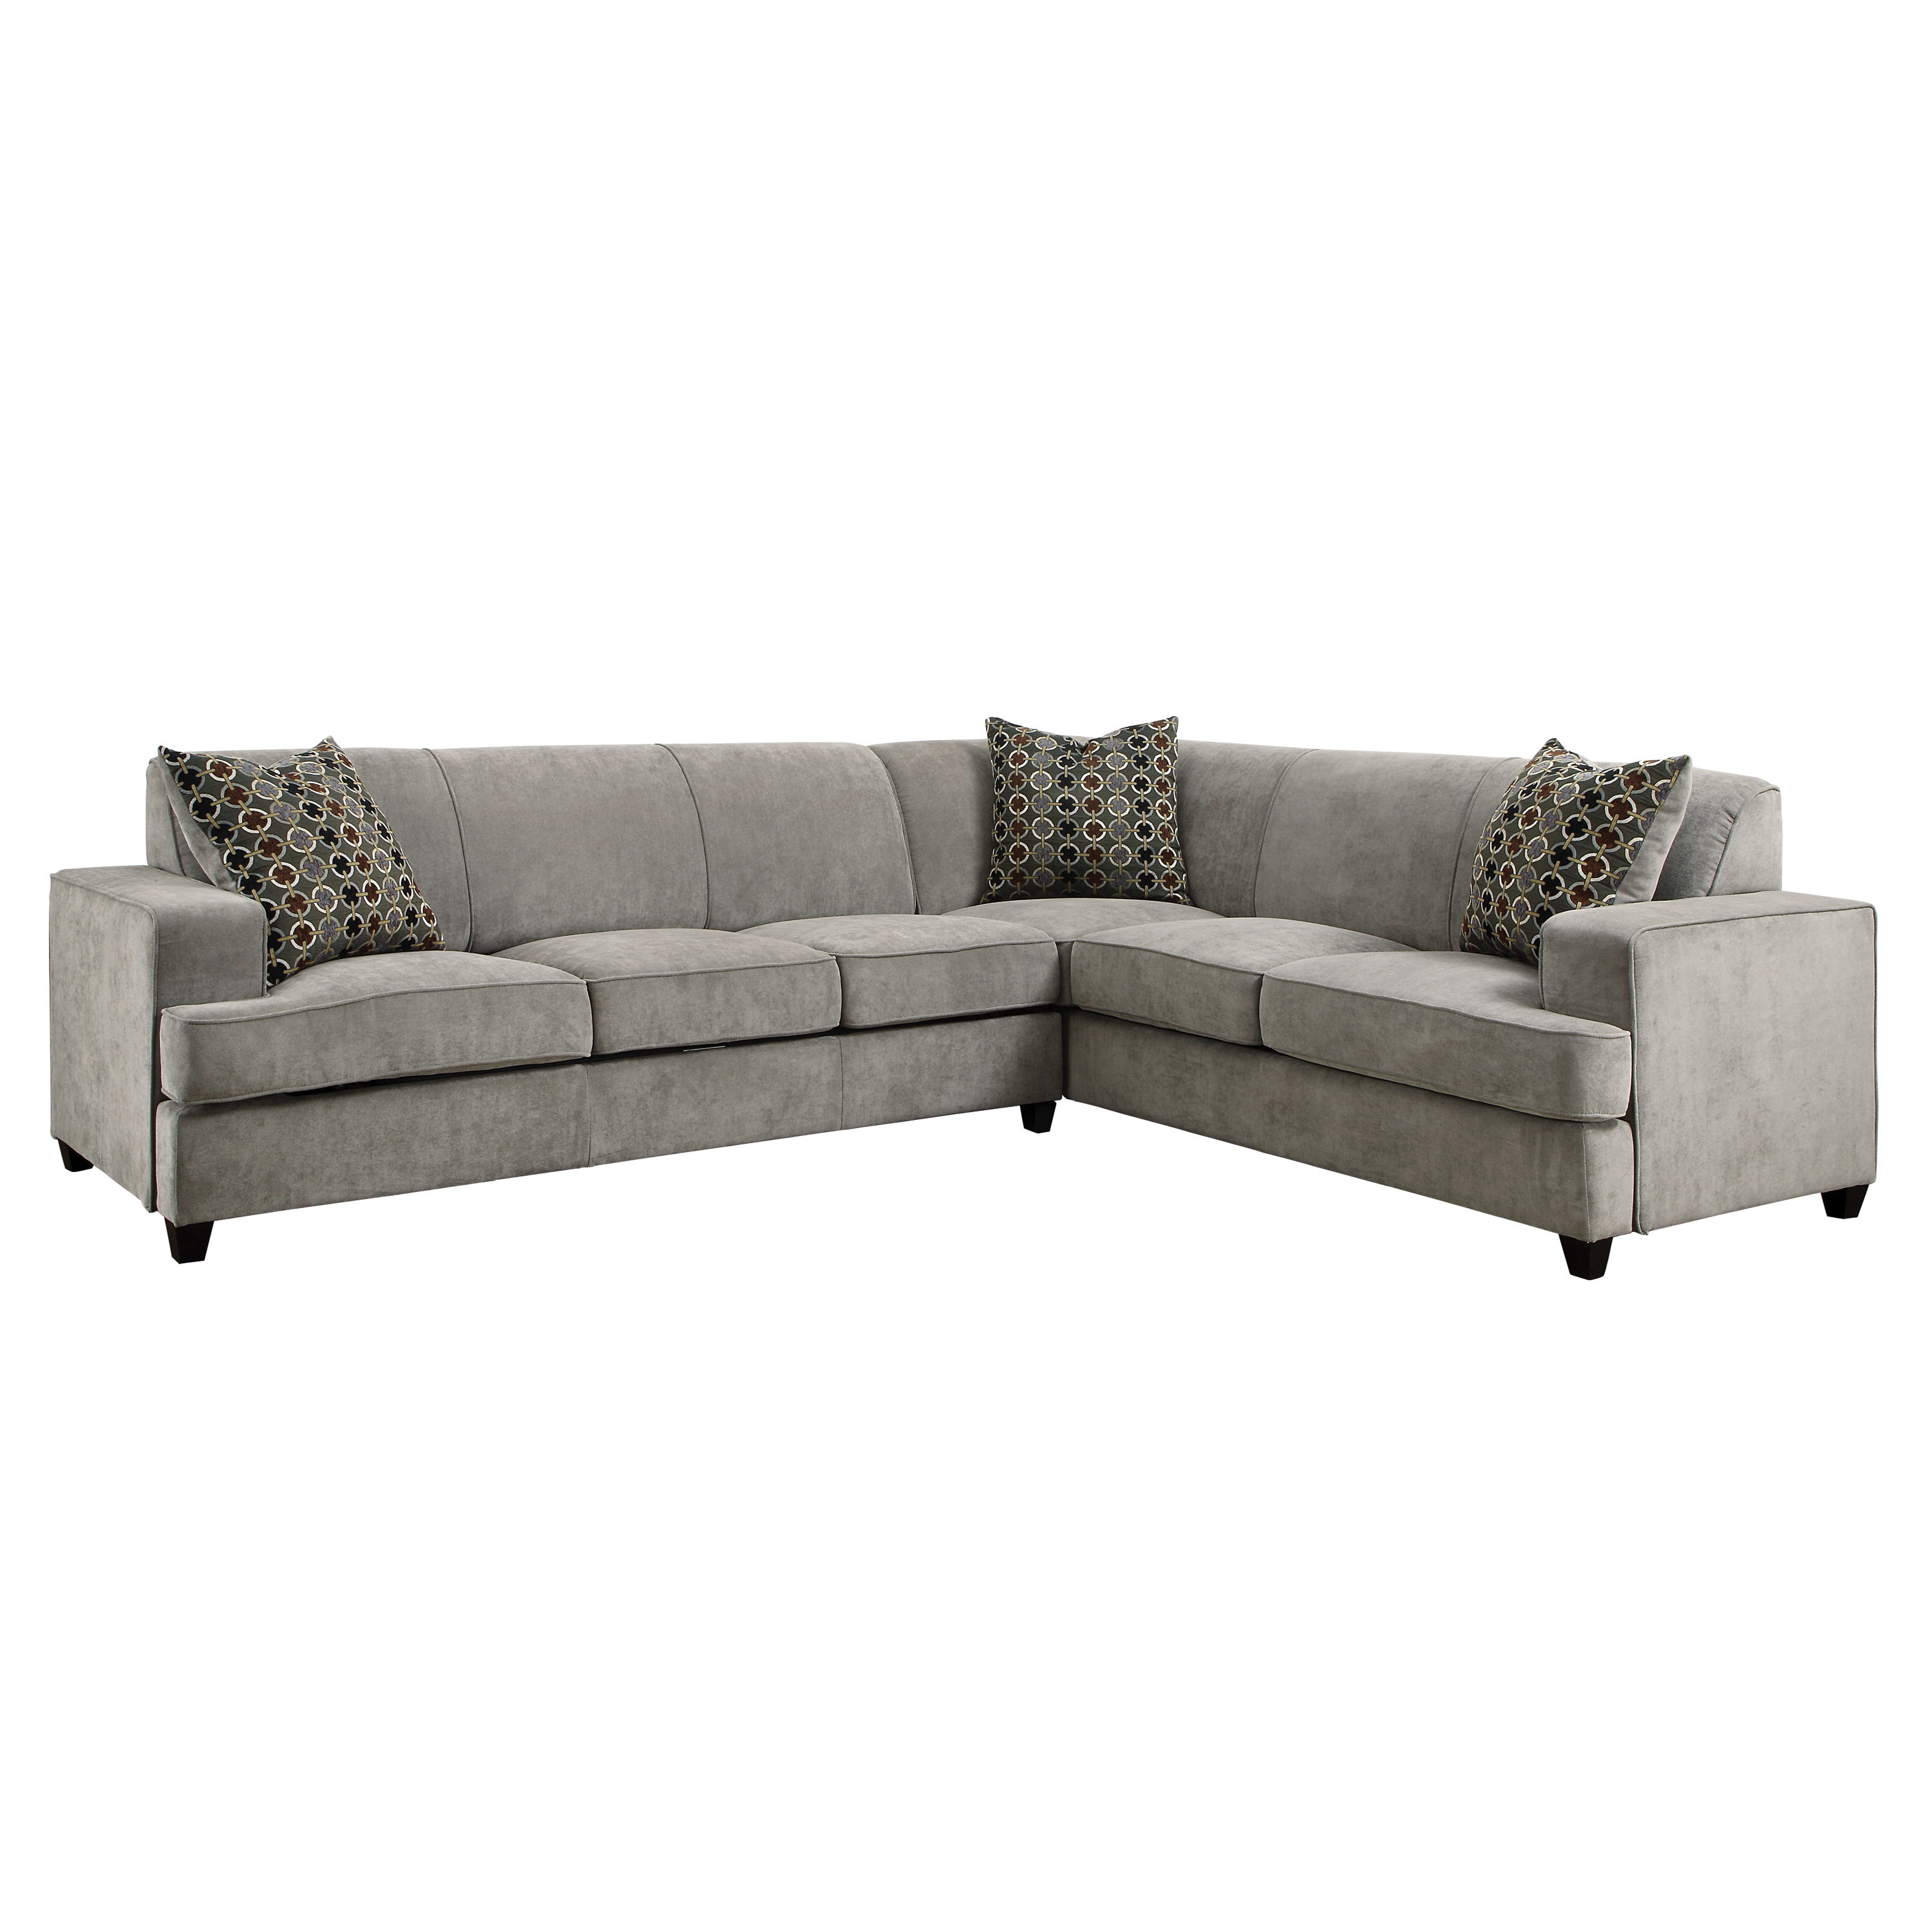 Sectional Sleeper Sofa | Sleeper Sectional | Sectional Sleeper Sofa Queen